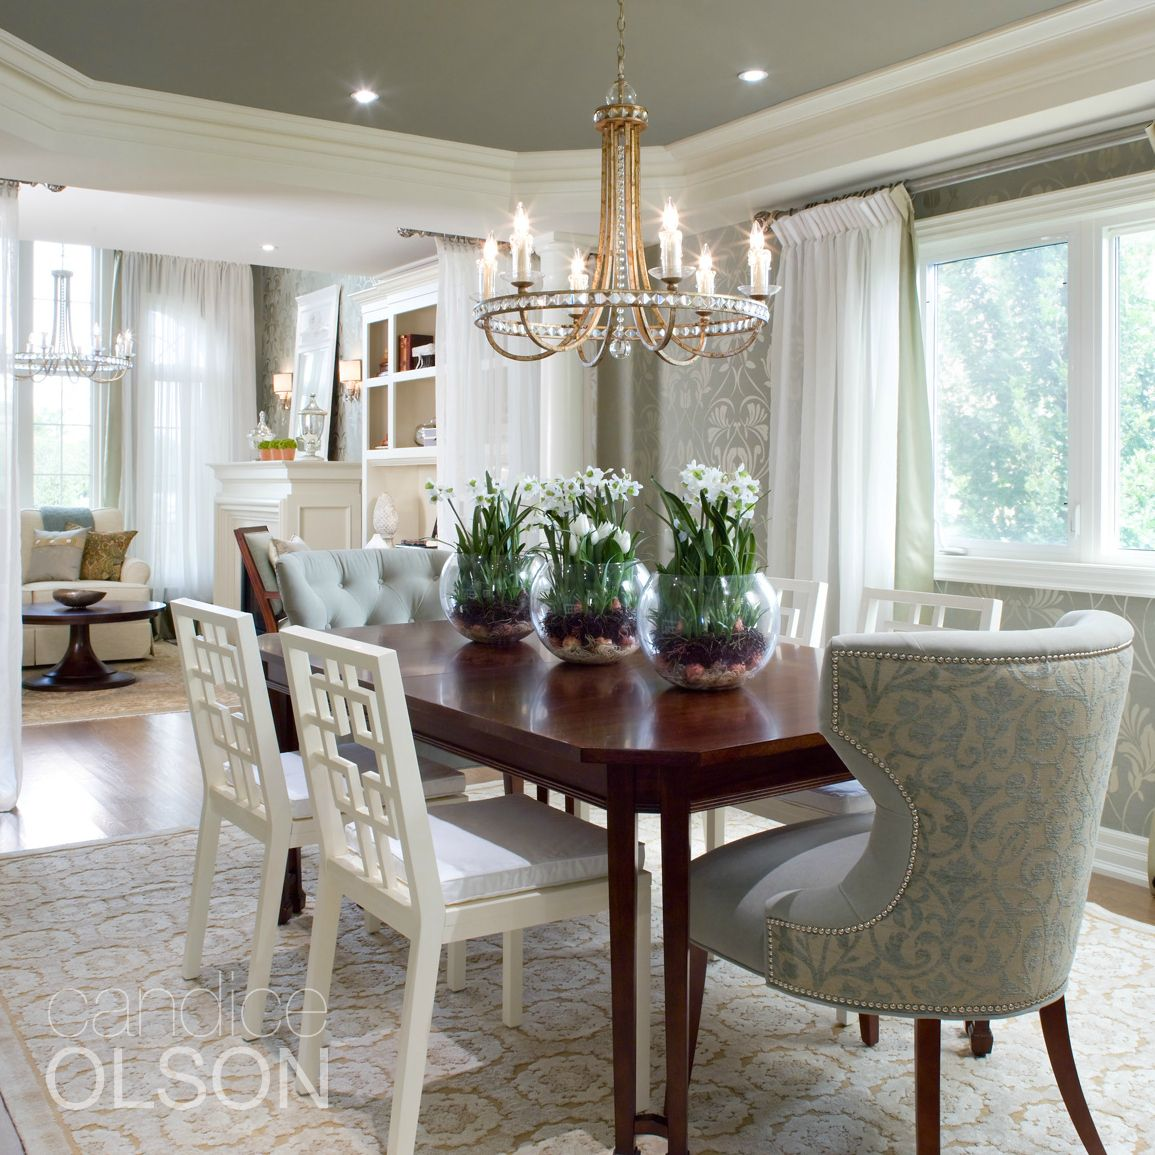 Condo Dining Living Room Design Ideas: A Calming Gray-green Palette Throughout This Home Is